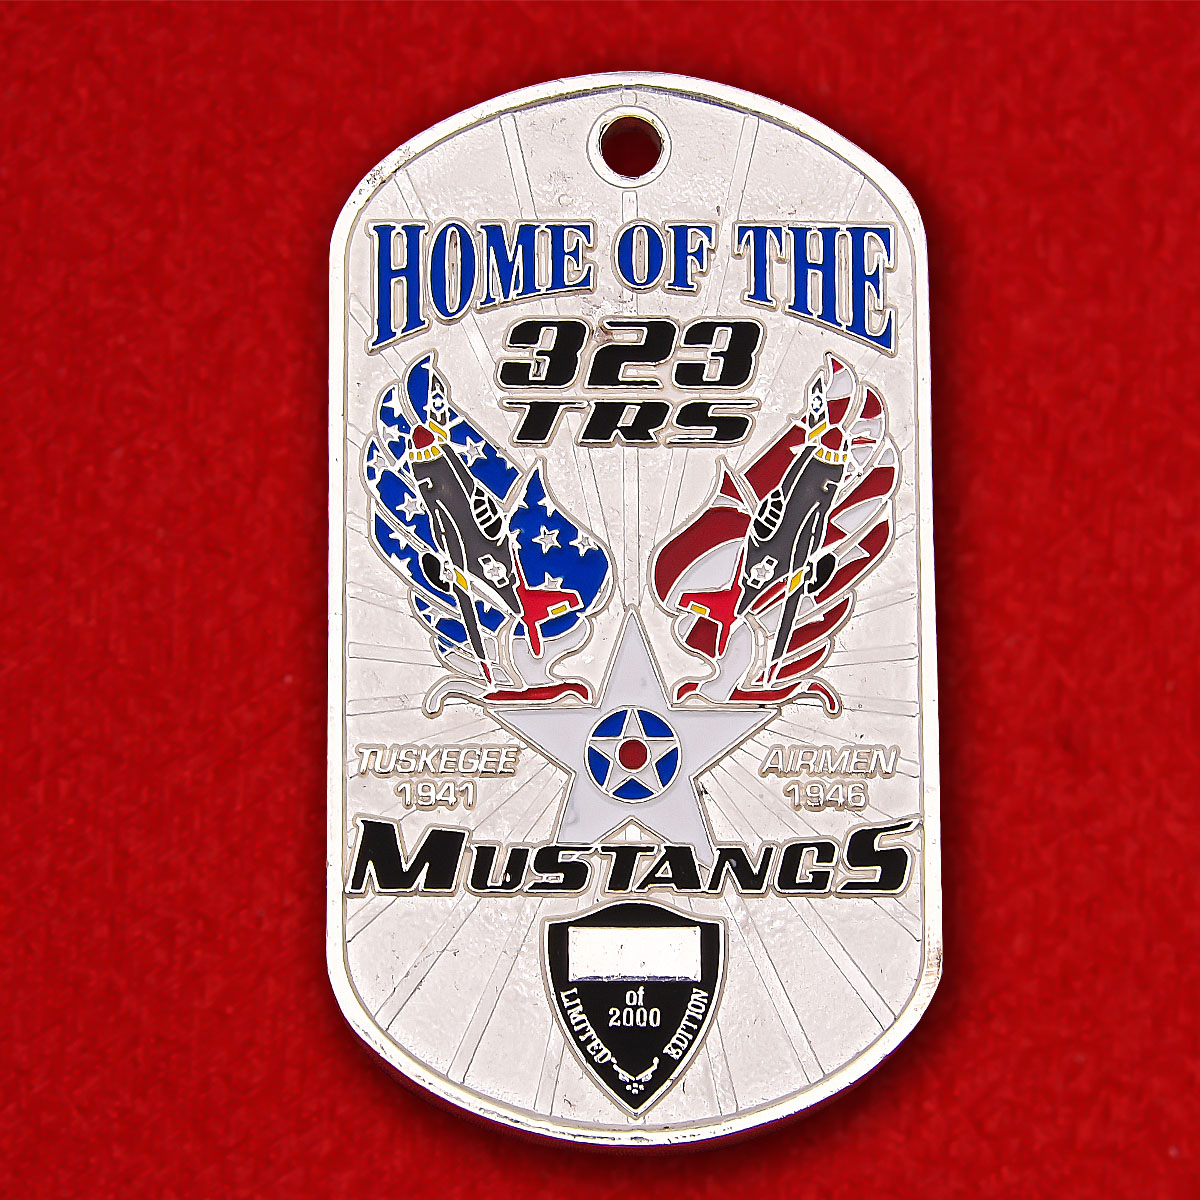 Home of the 323trs Mustangs Squadron Token